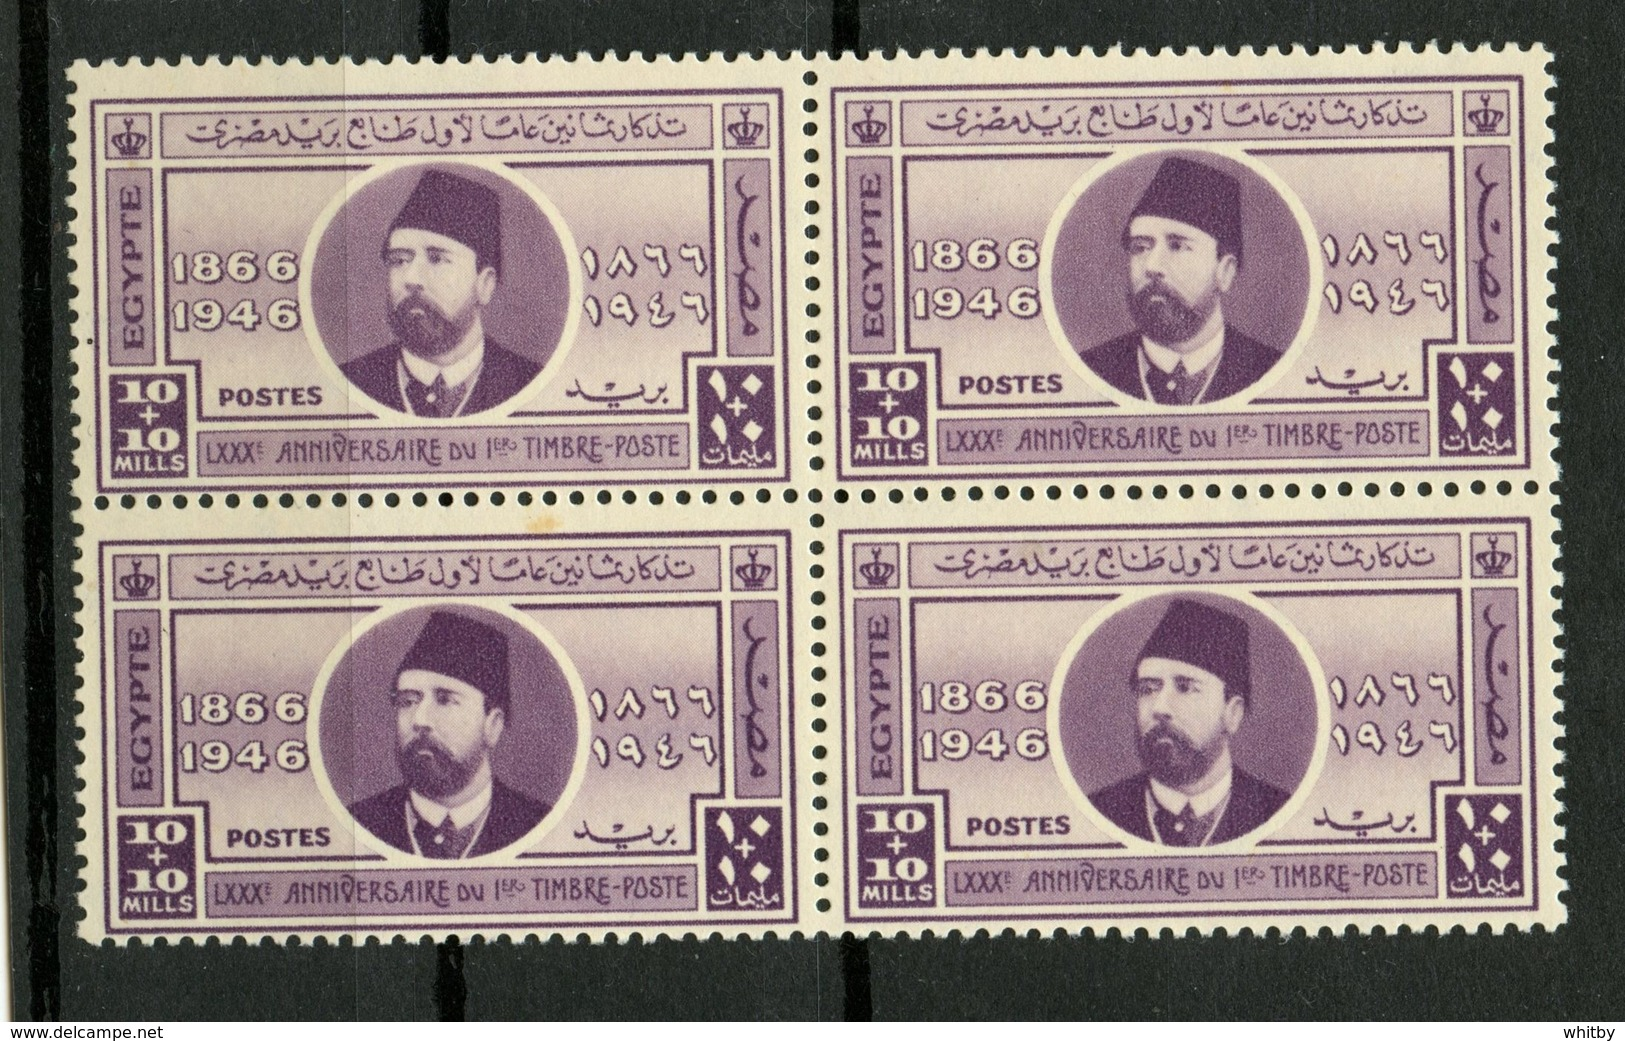 Egypt 1946 10 + 10m First Postage Stamp Issue #B4   MNH Block Of 4 - Egypt